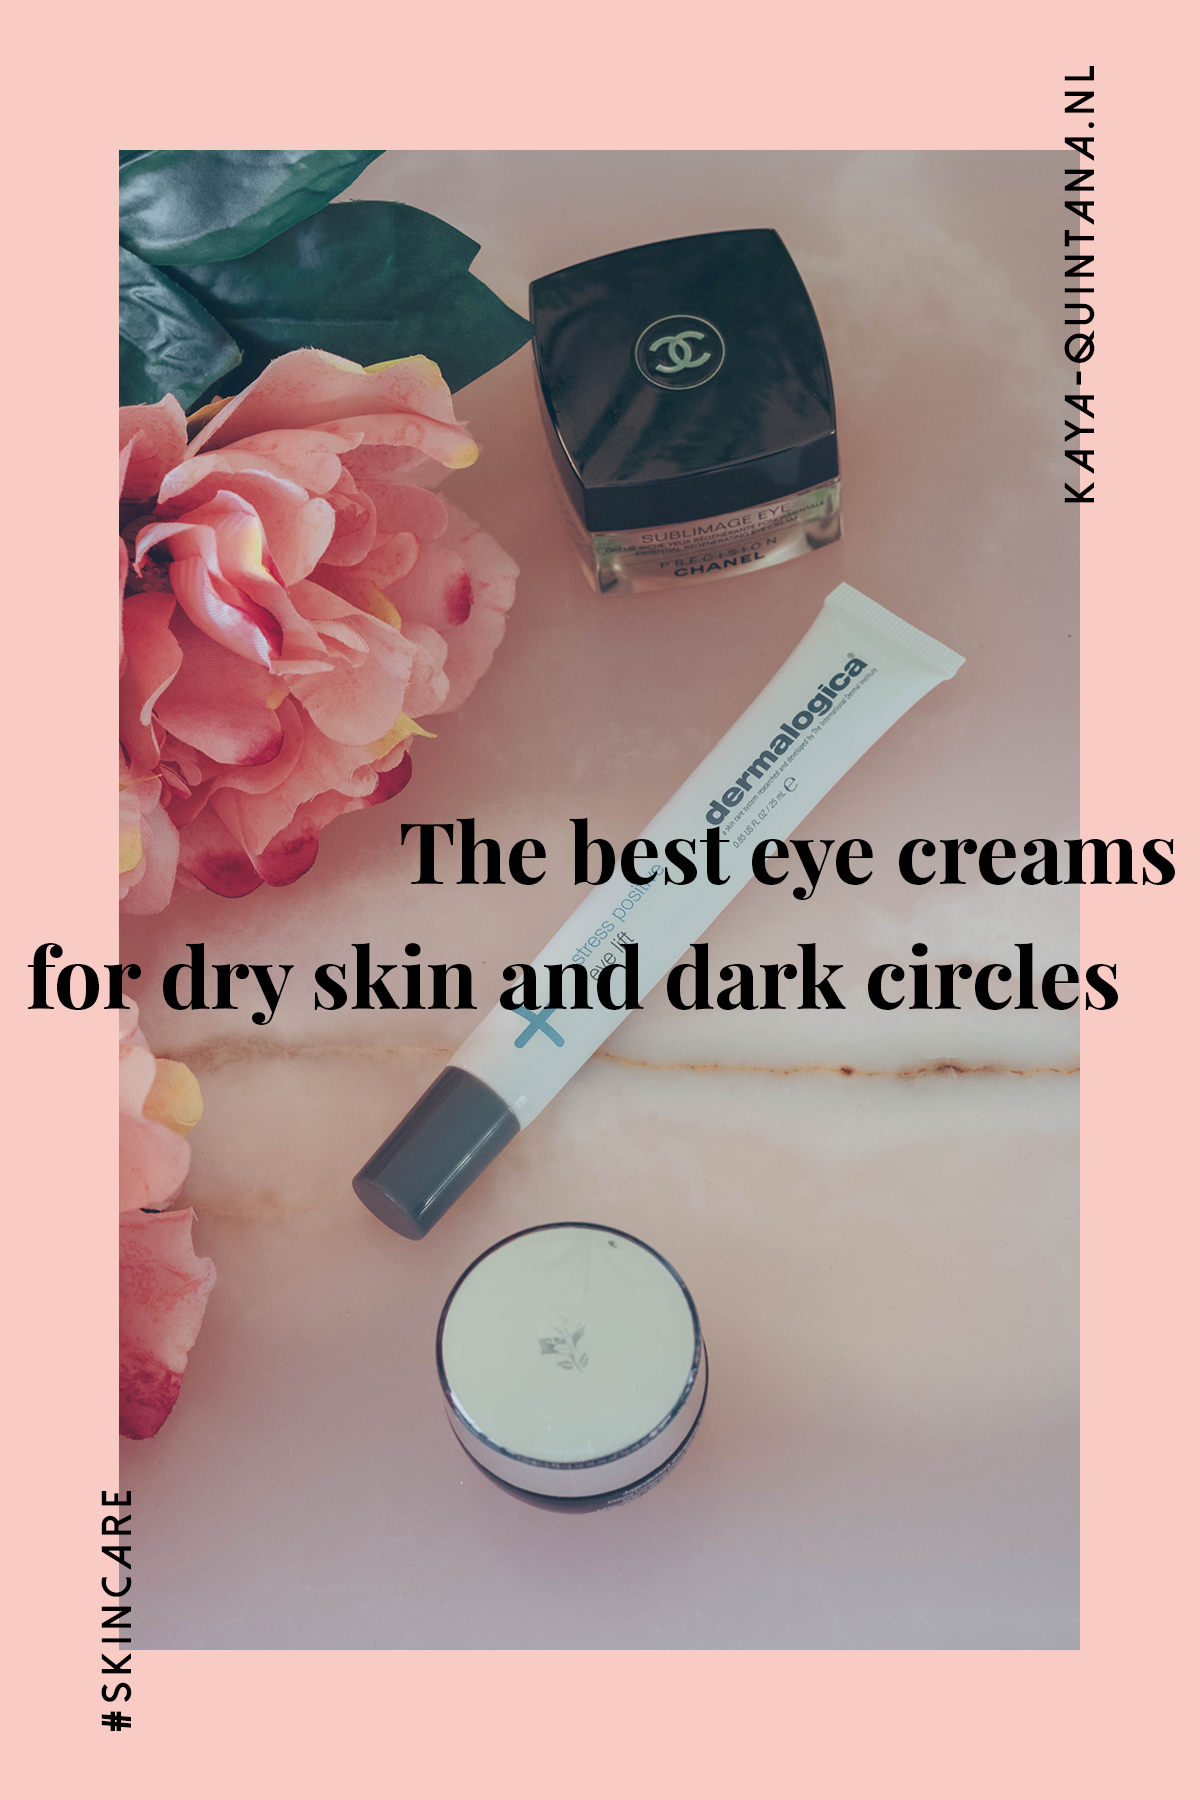 The best eye creams